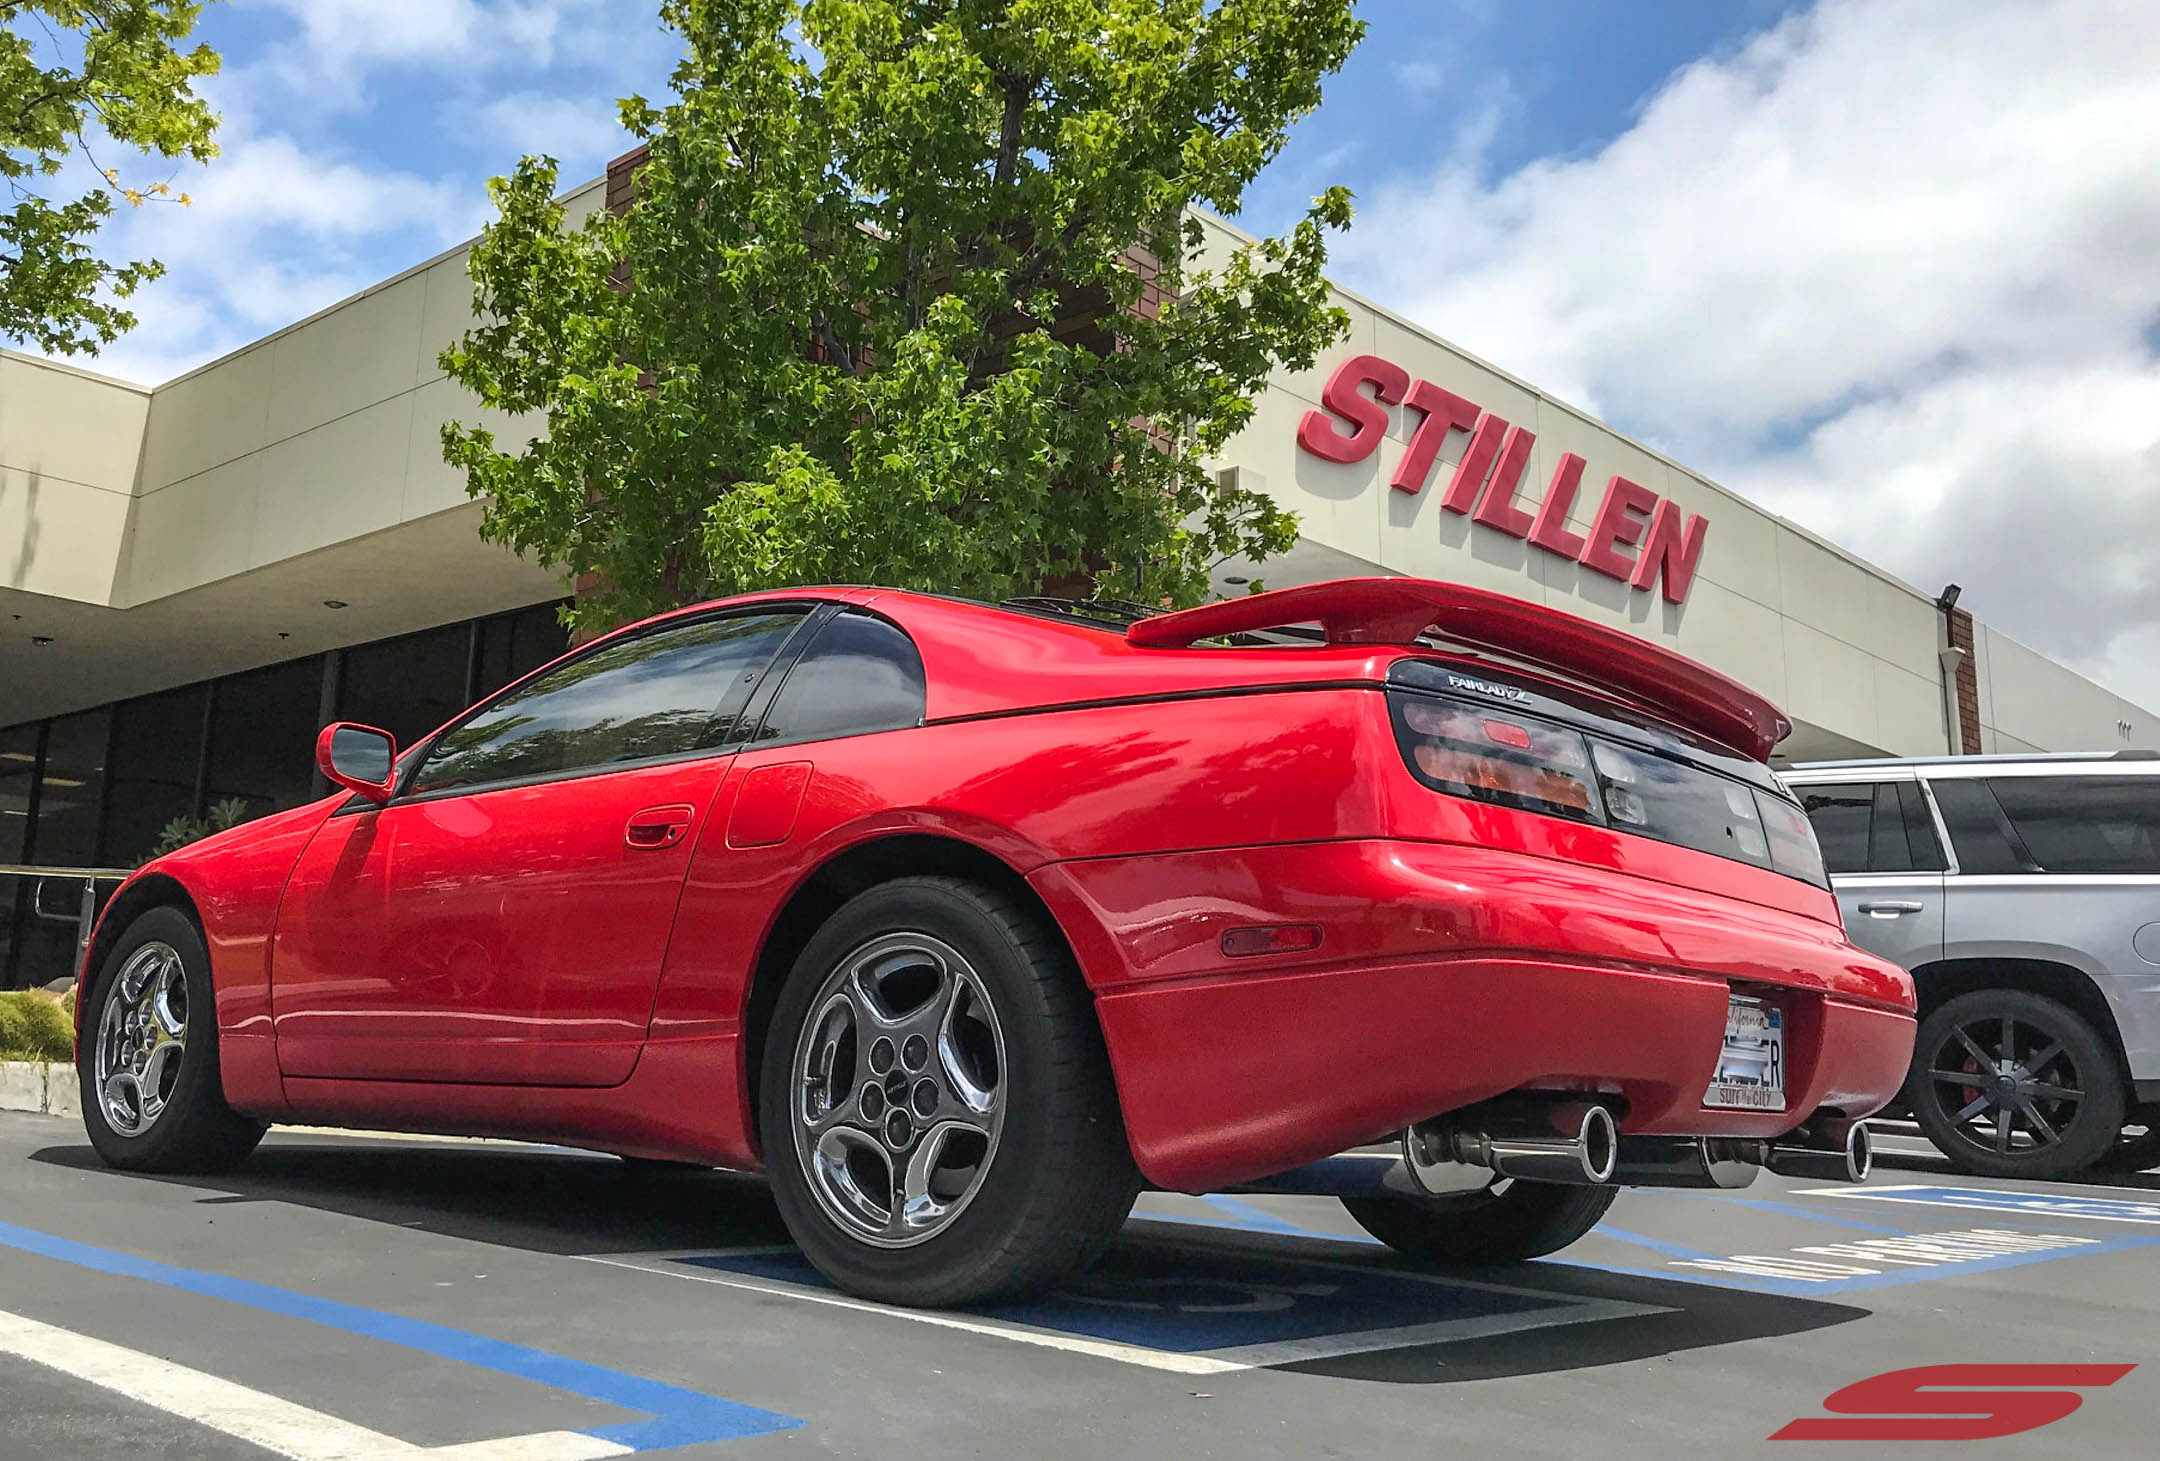 Z32 300ZX ZZRIDER Red at STILLEN (2)